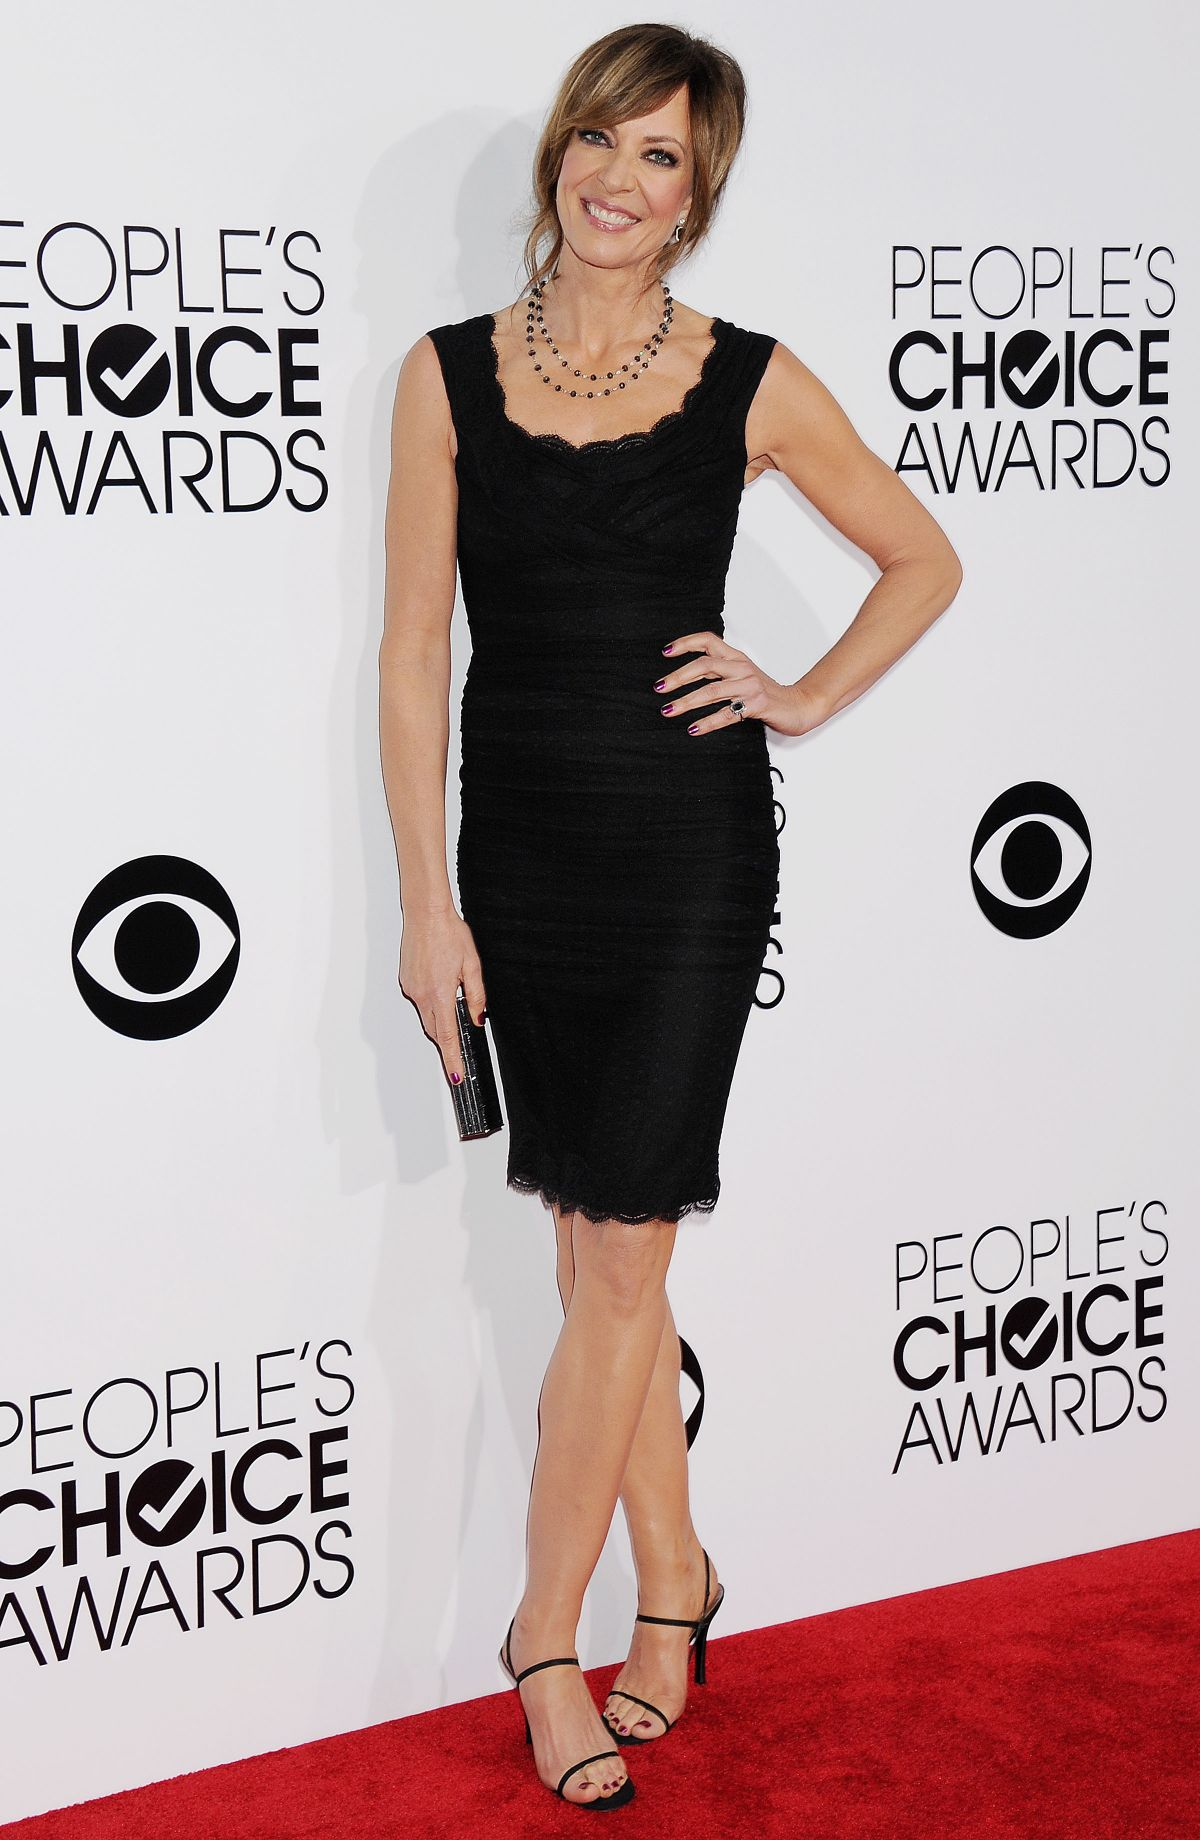 Allison Janney Pics allison janney at 40th annual people's choice awards in los